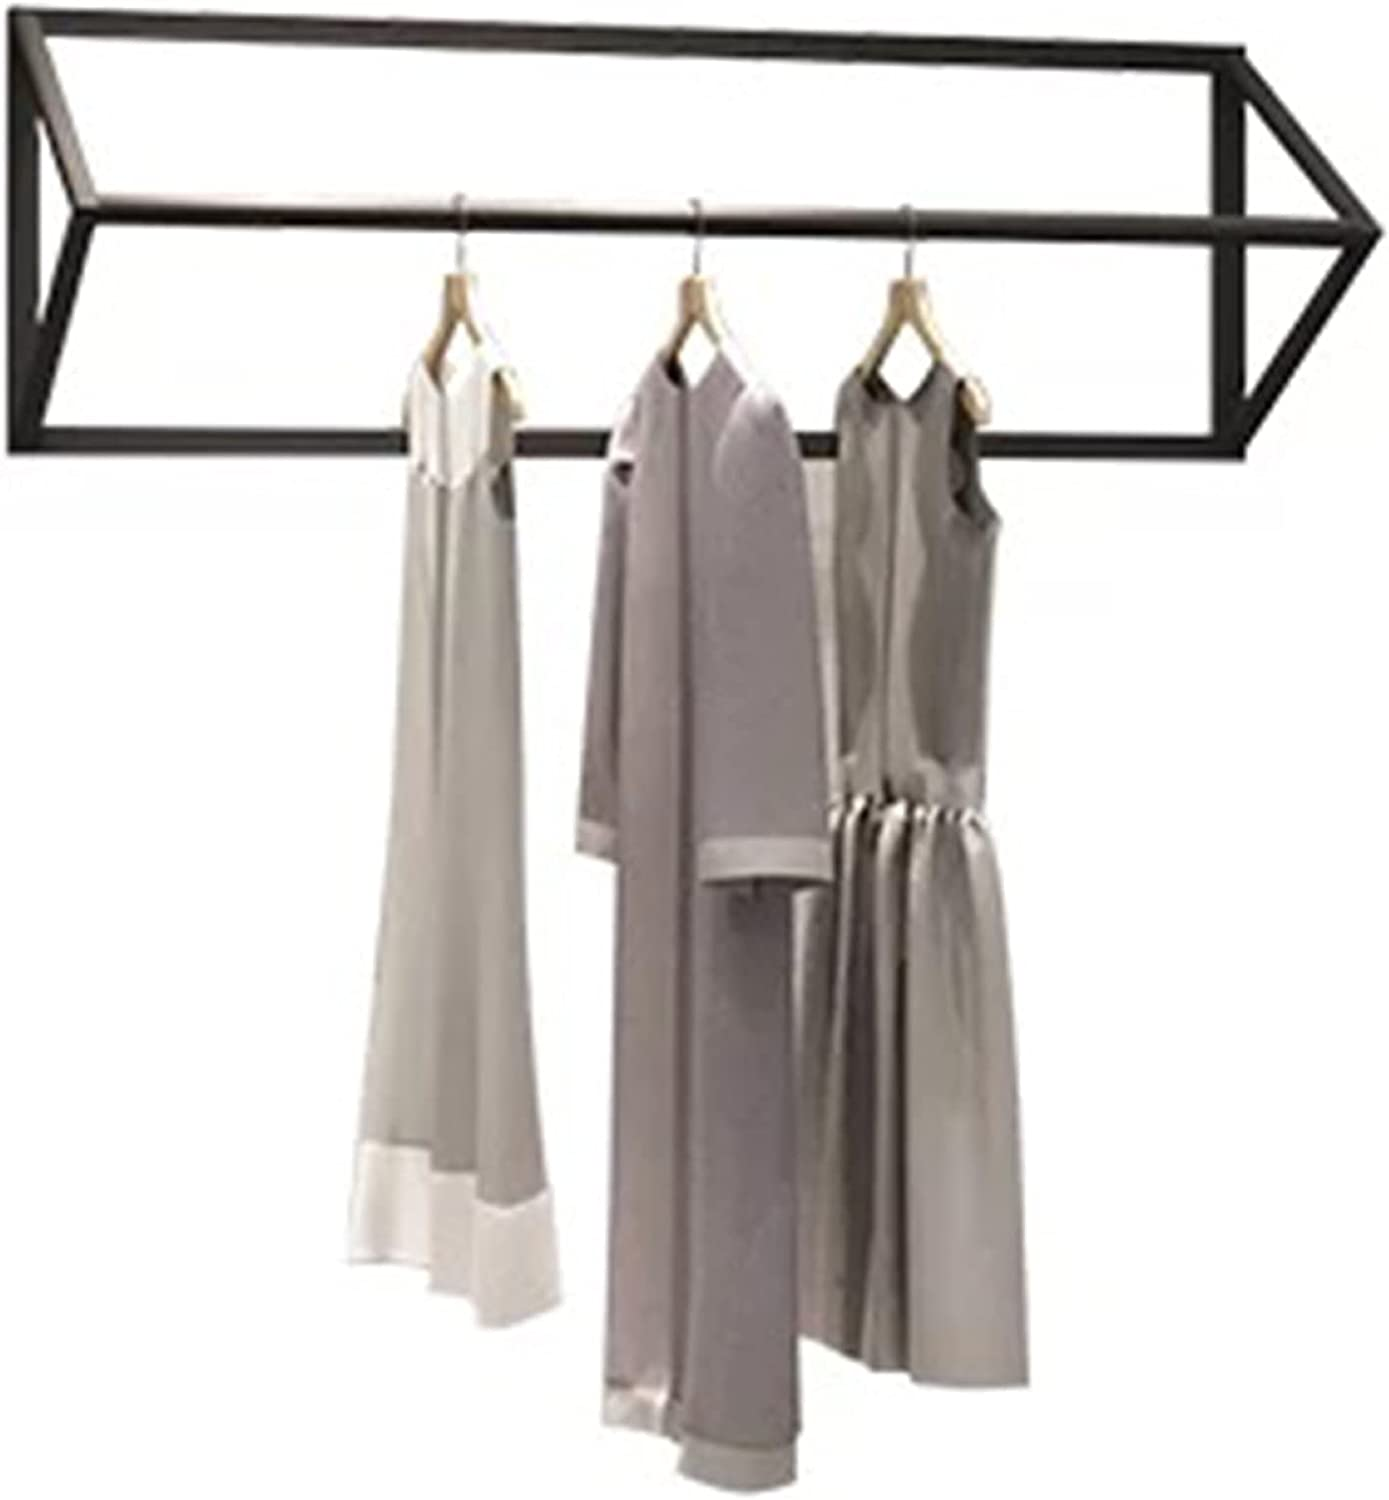 Wall-Mounted Clothing Display shopping Rack Clothes De Gifts Rail